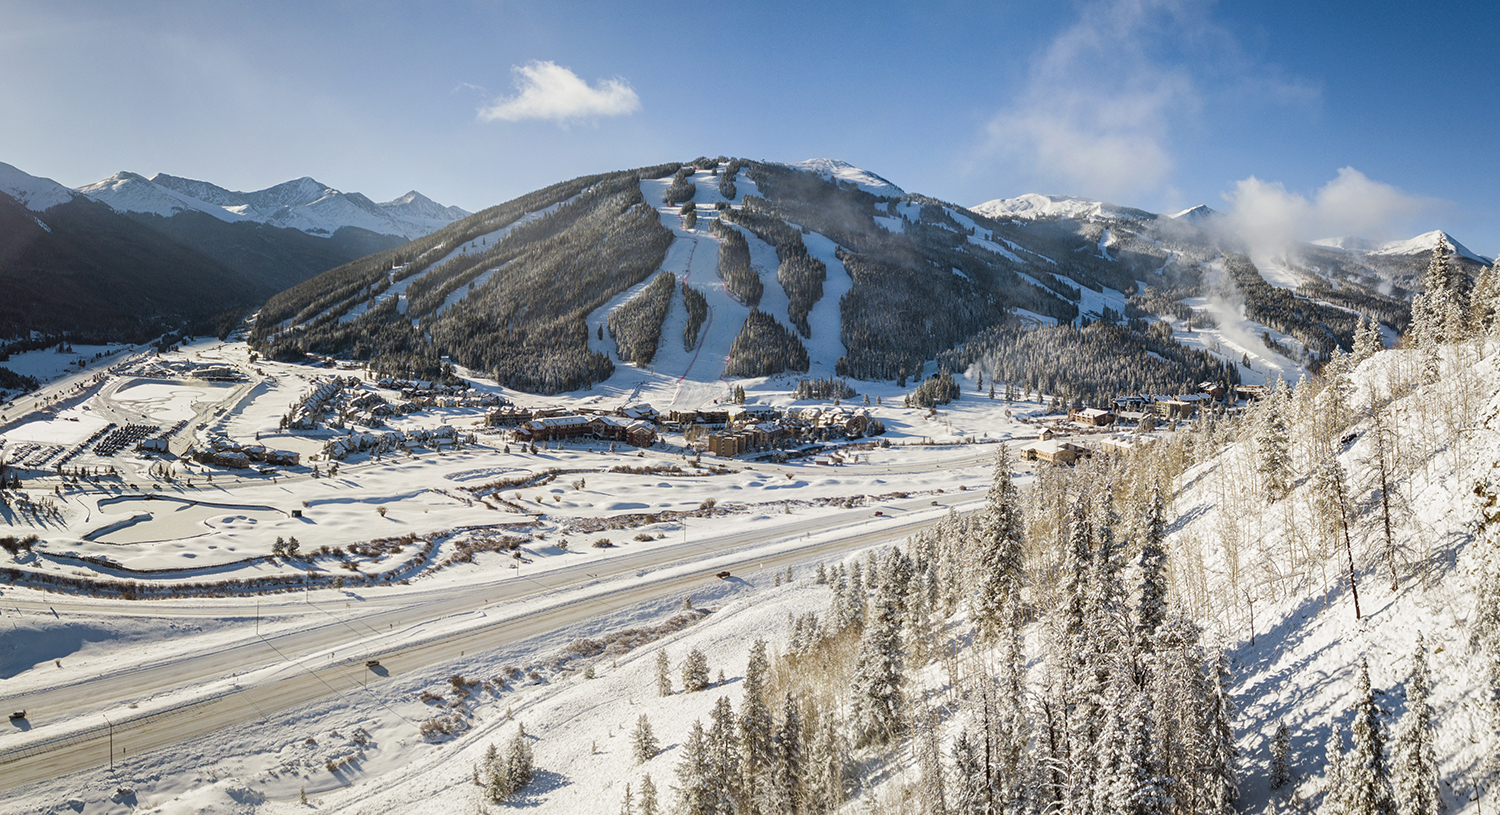 A look from above of Copper Mountain, Colorado ski resort